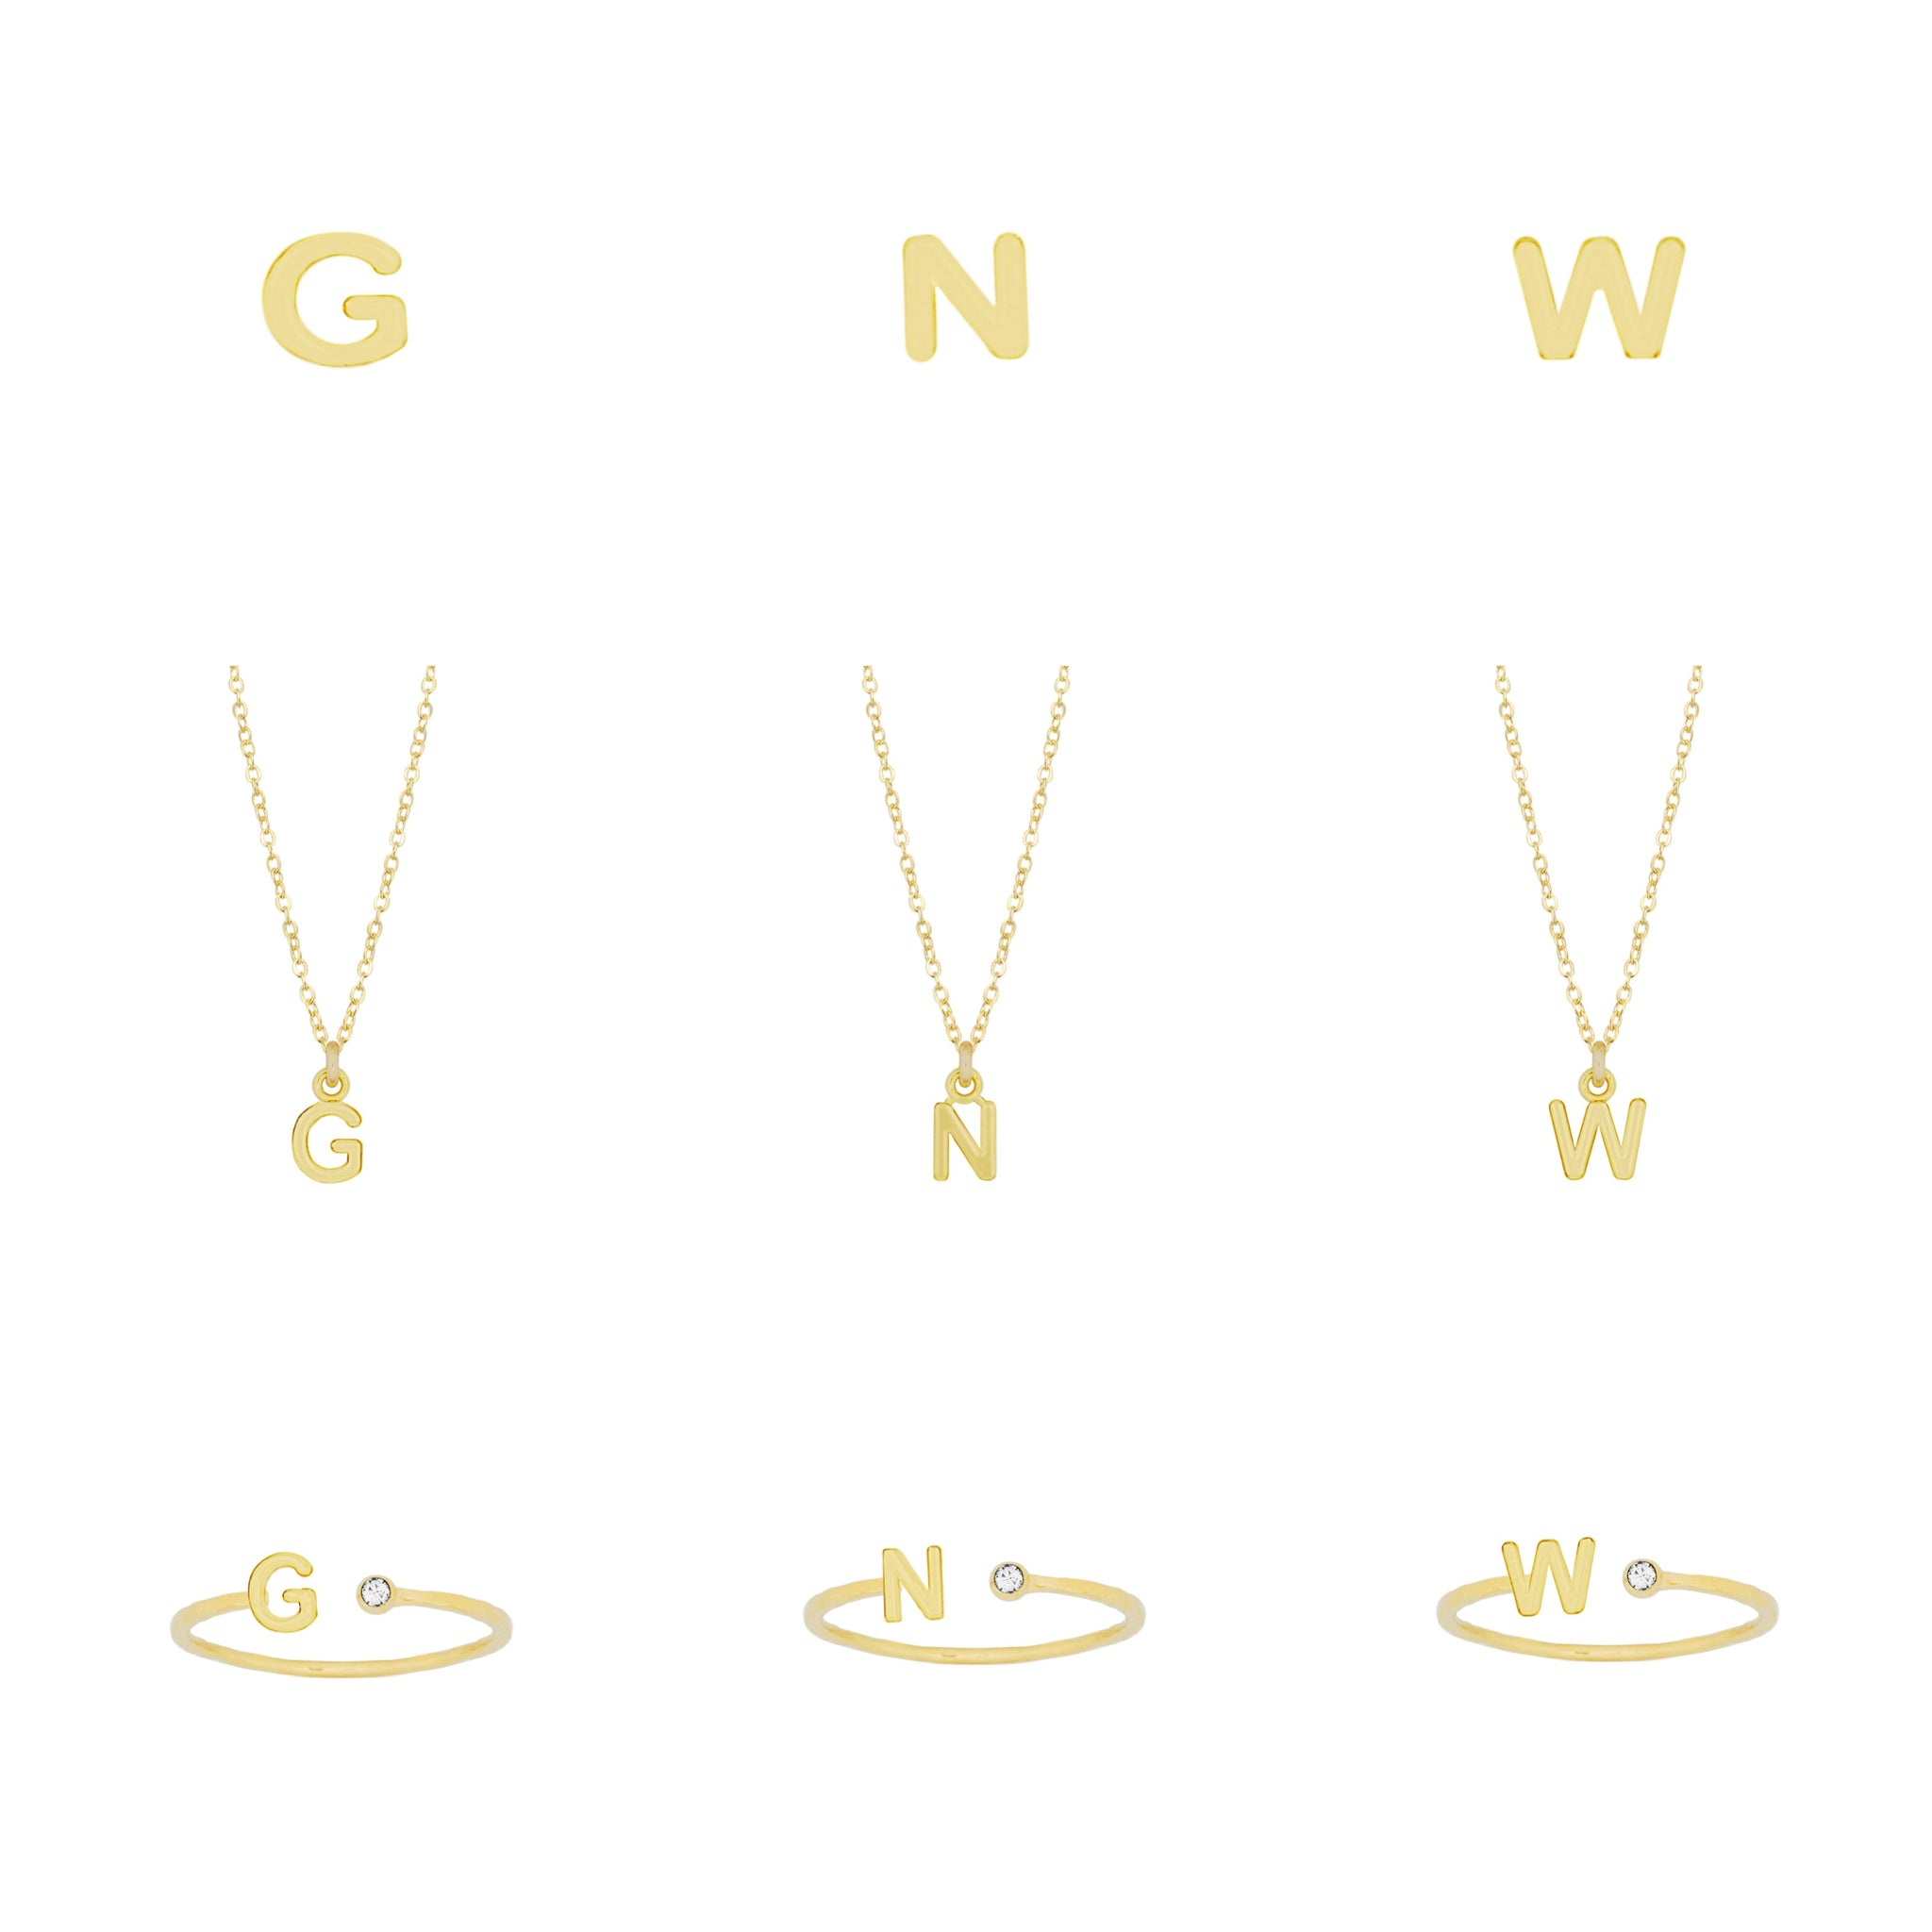 Initials G, N, W, Rings, Necklace, Stud, Katie Dean Jewelry